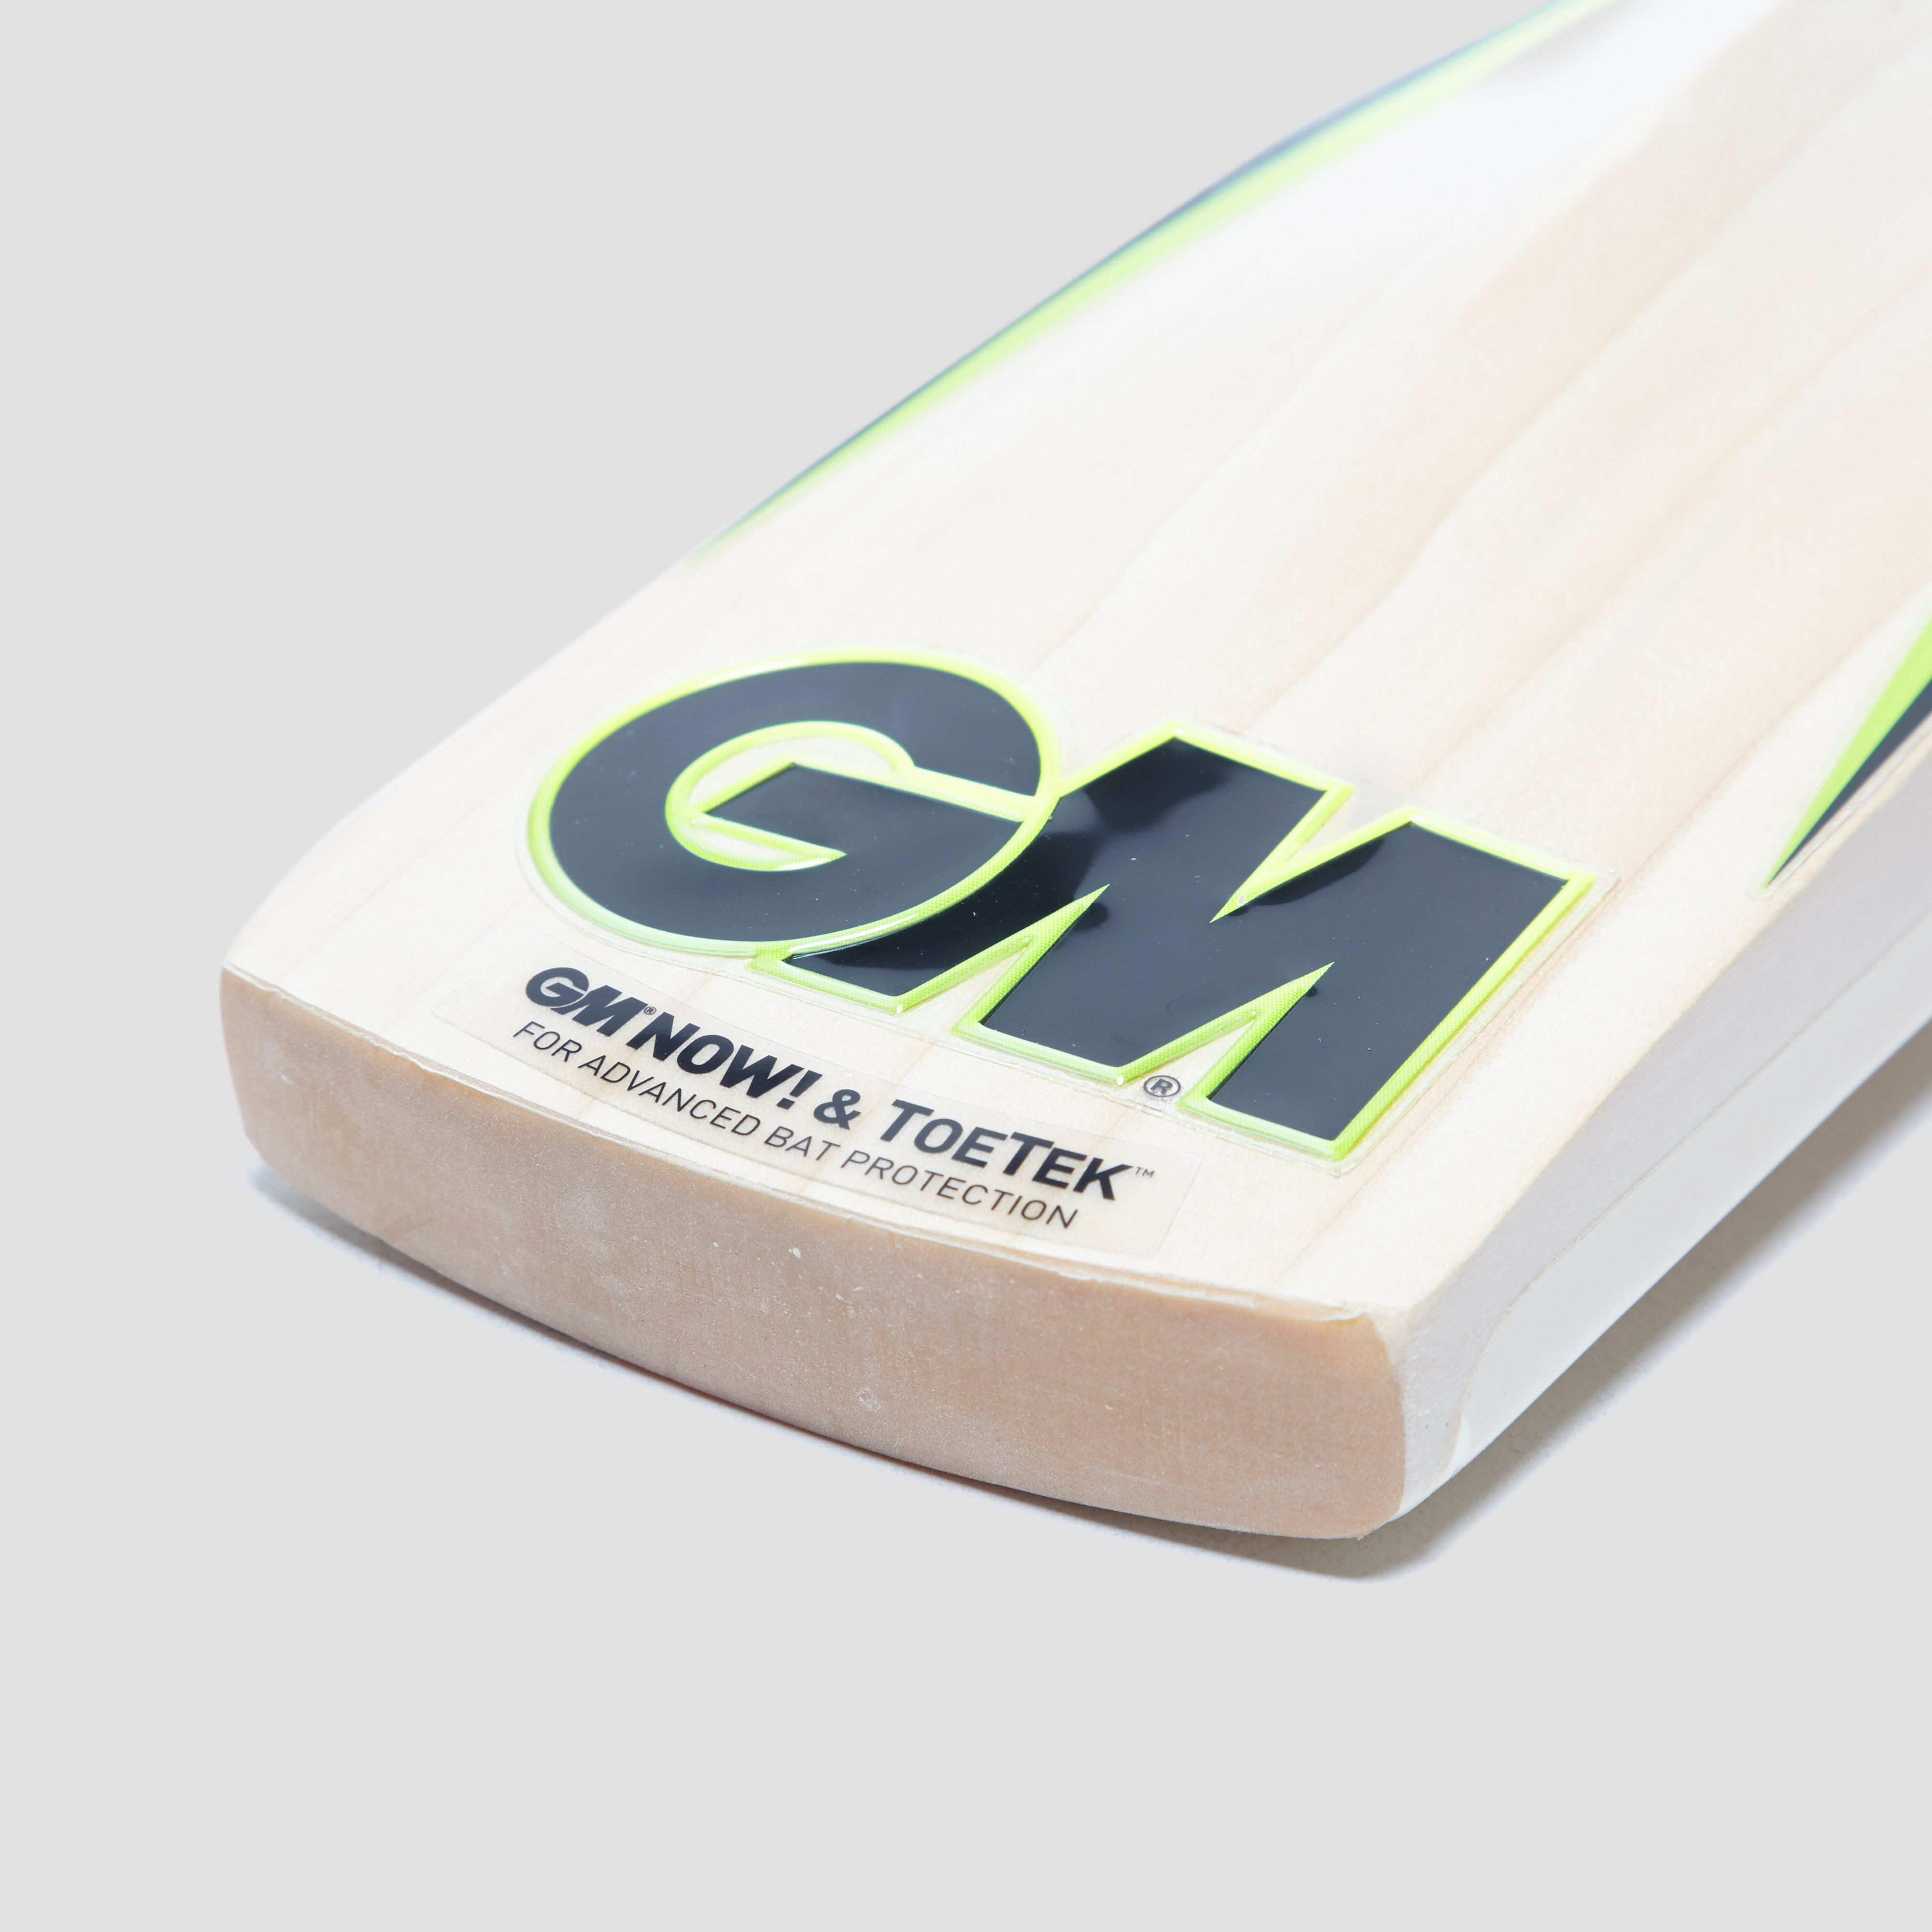 Gunn & Moore Zelos L555 606 Cricket Bat